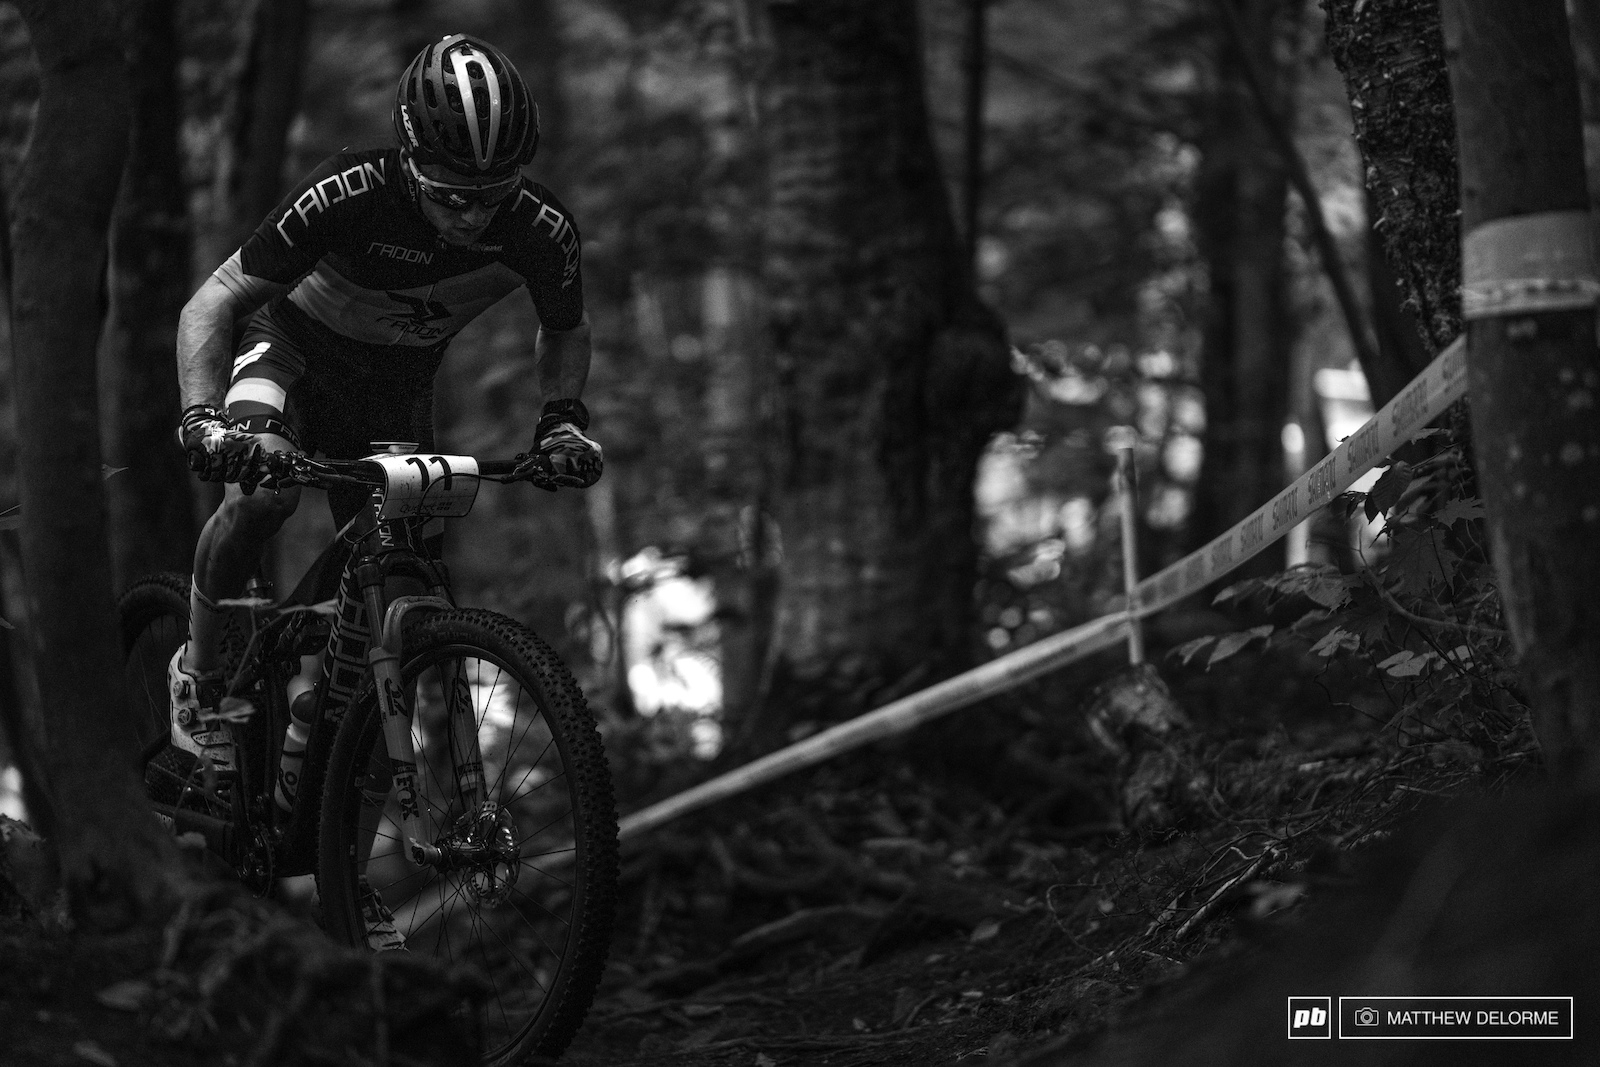 Mathias Flueckiger powers up the punchy woods section climbs.